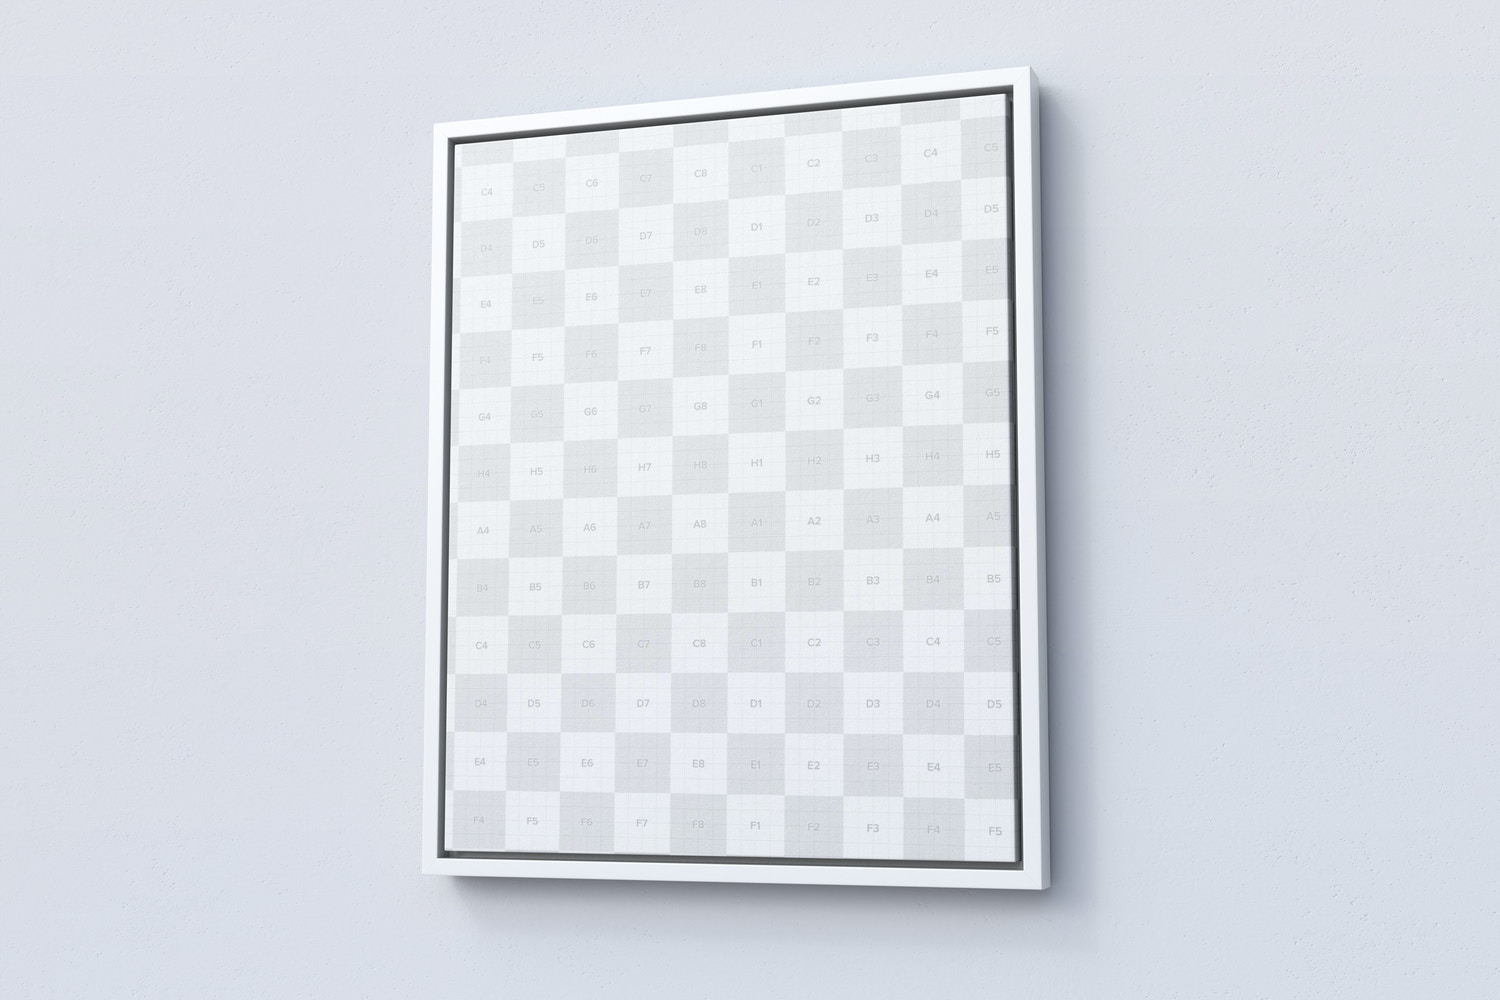 4:5 Portrait Canvas Mockup in Floater Frame, Right View